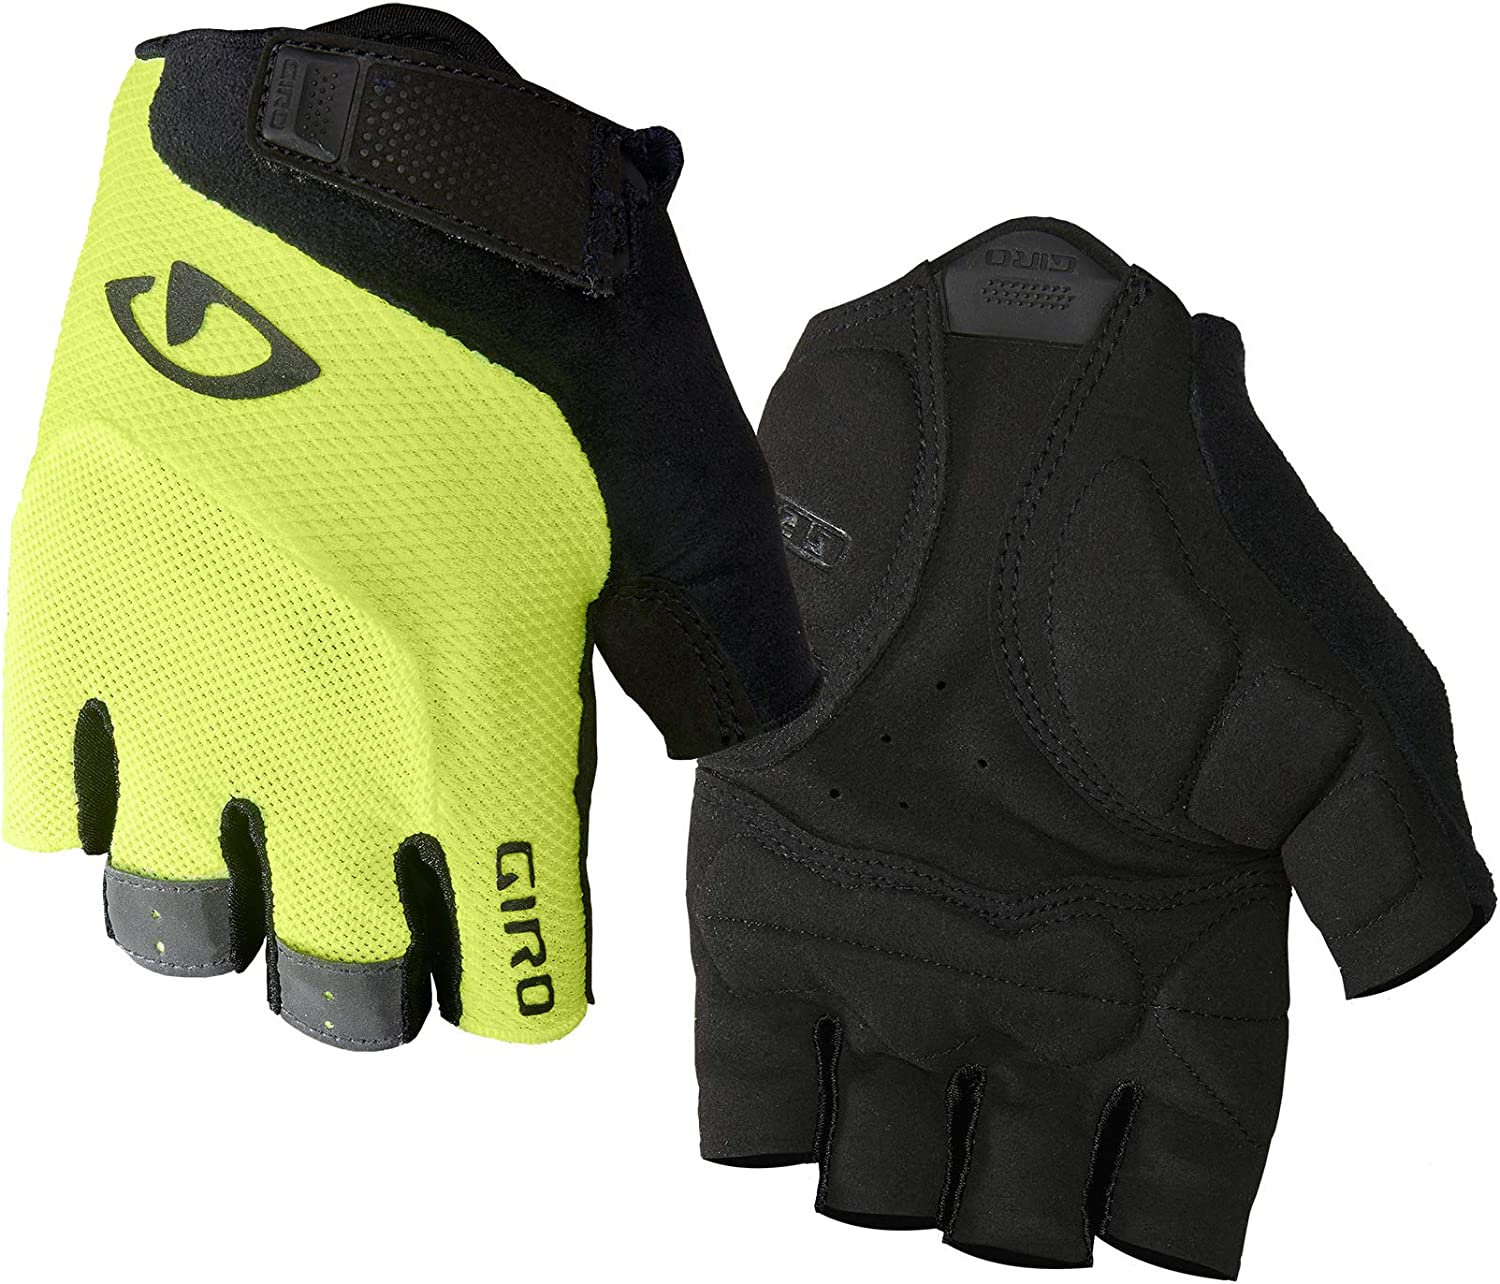 Giro Strade Dure SG Mens Road Cycling Gloves